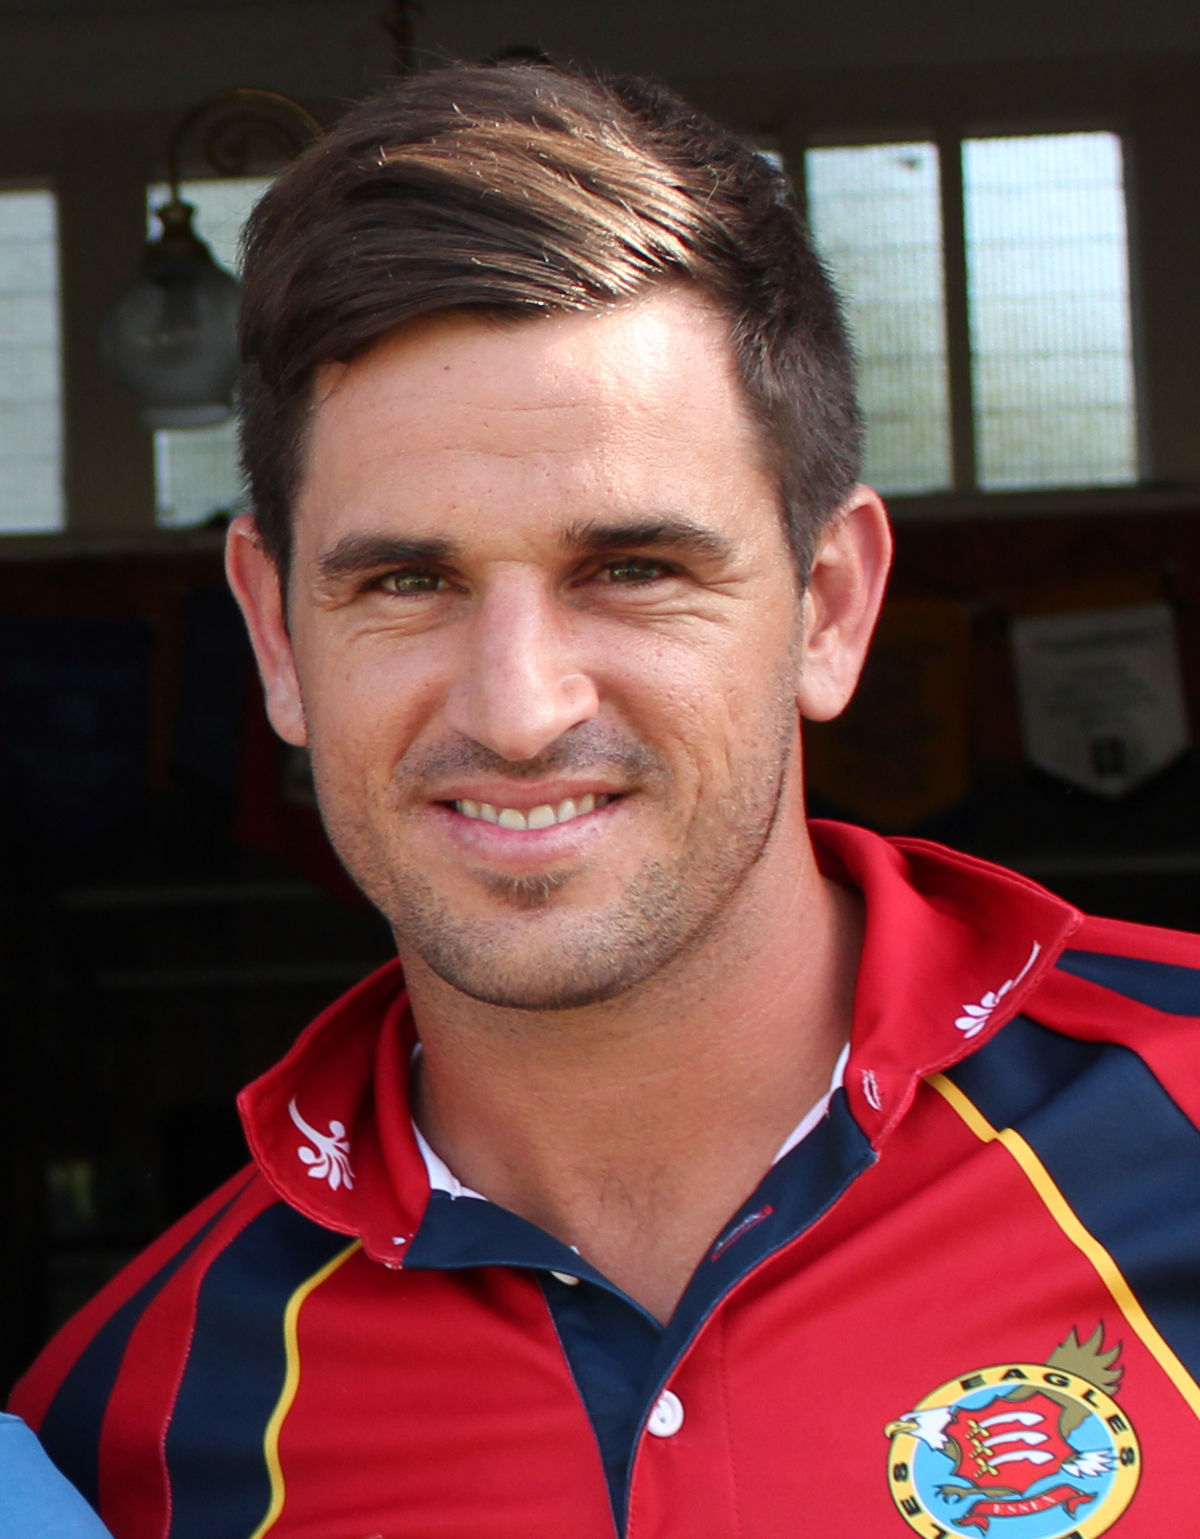 Ten Of Diamonds Playing Card With Clipping Path Stock: Ryan Ten Doeschate